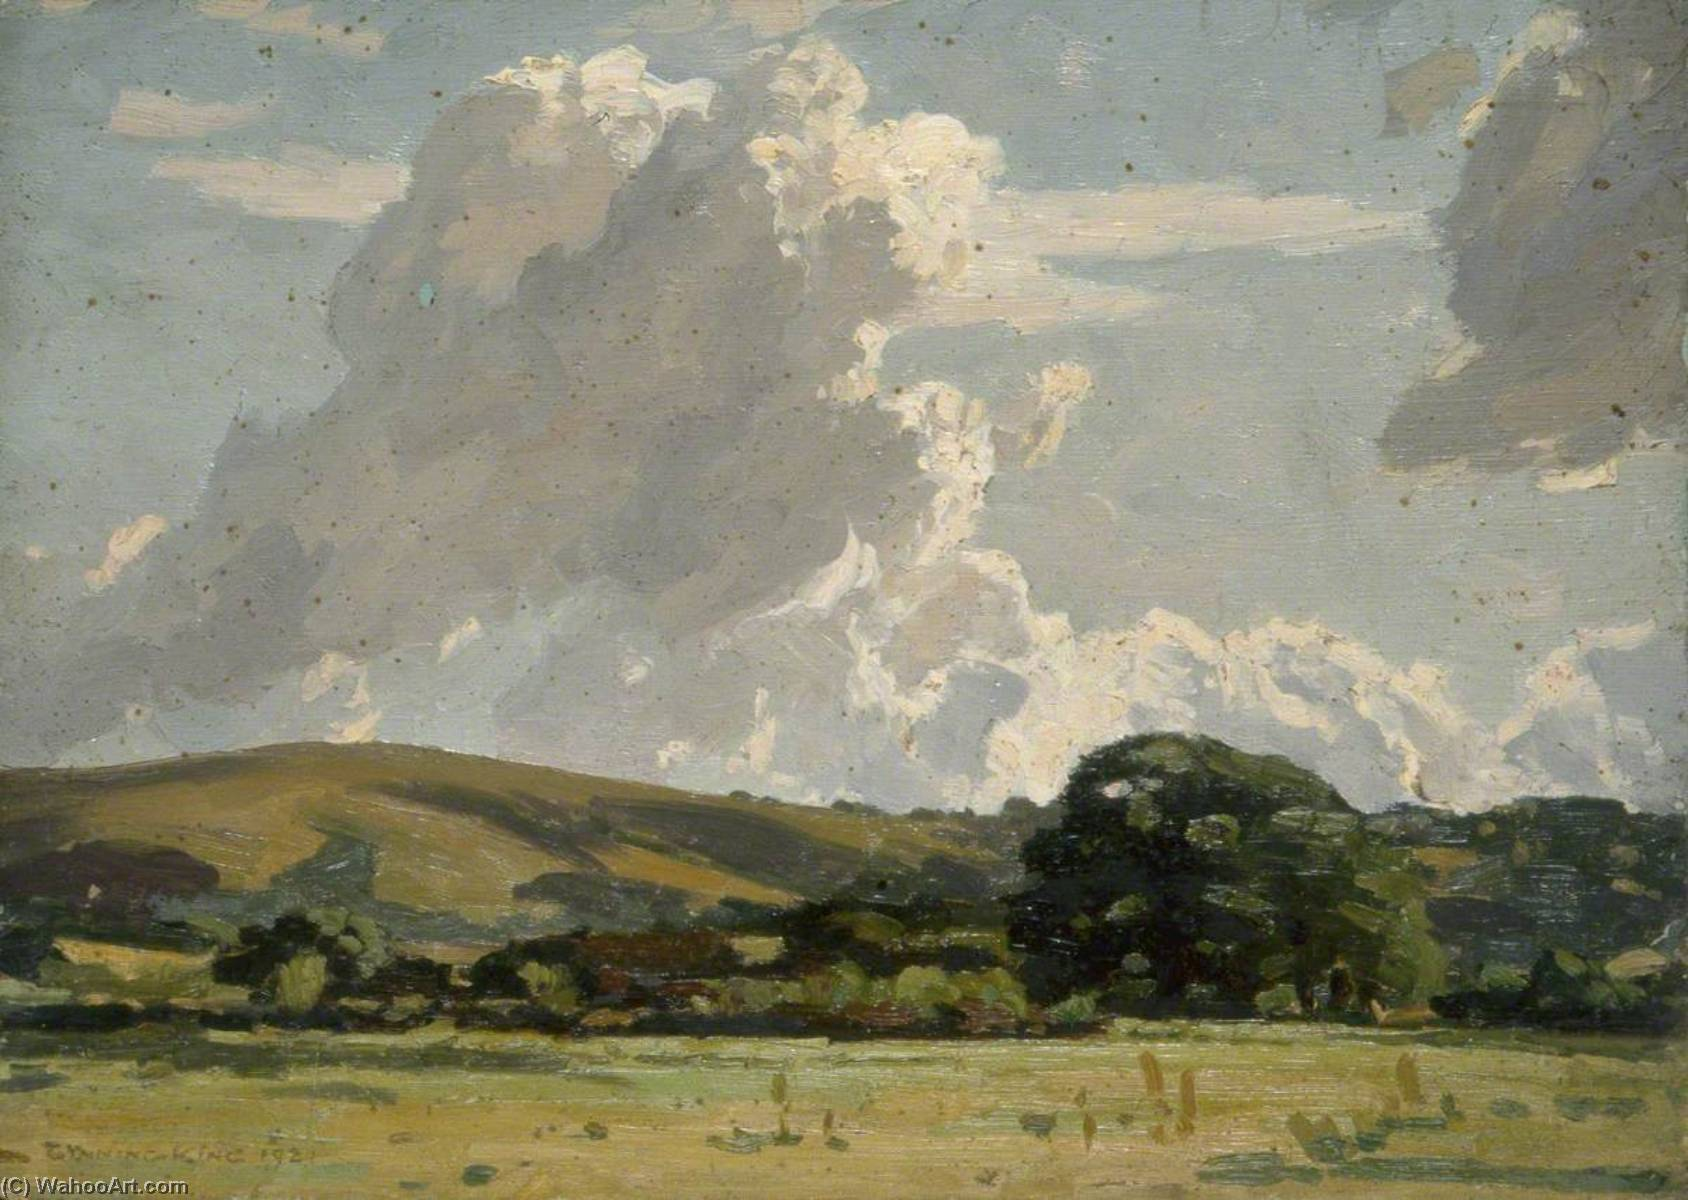 Landscape and Cloud Study, Oil by Gunning King